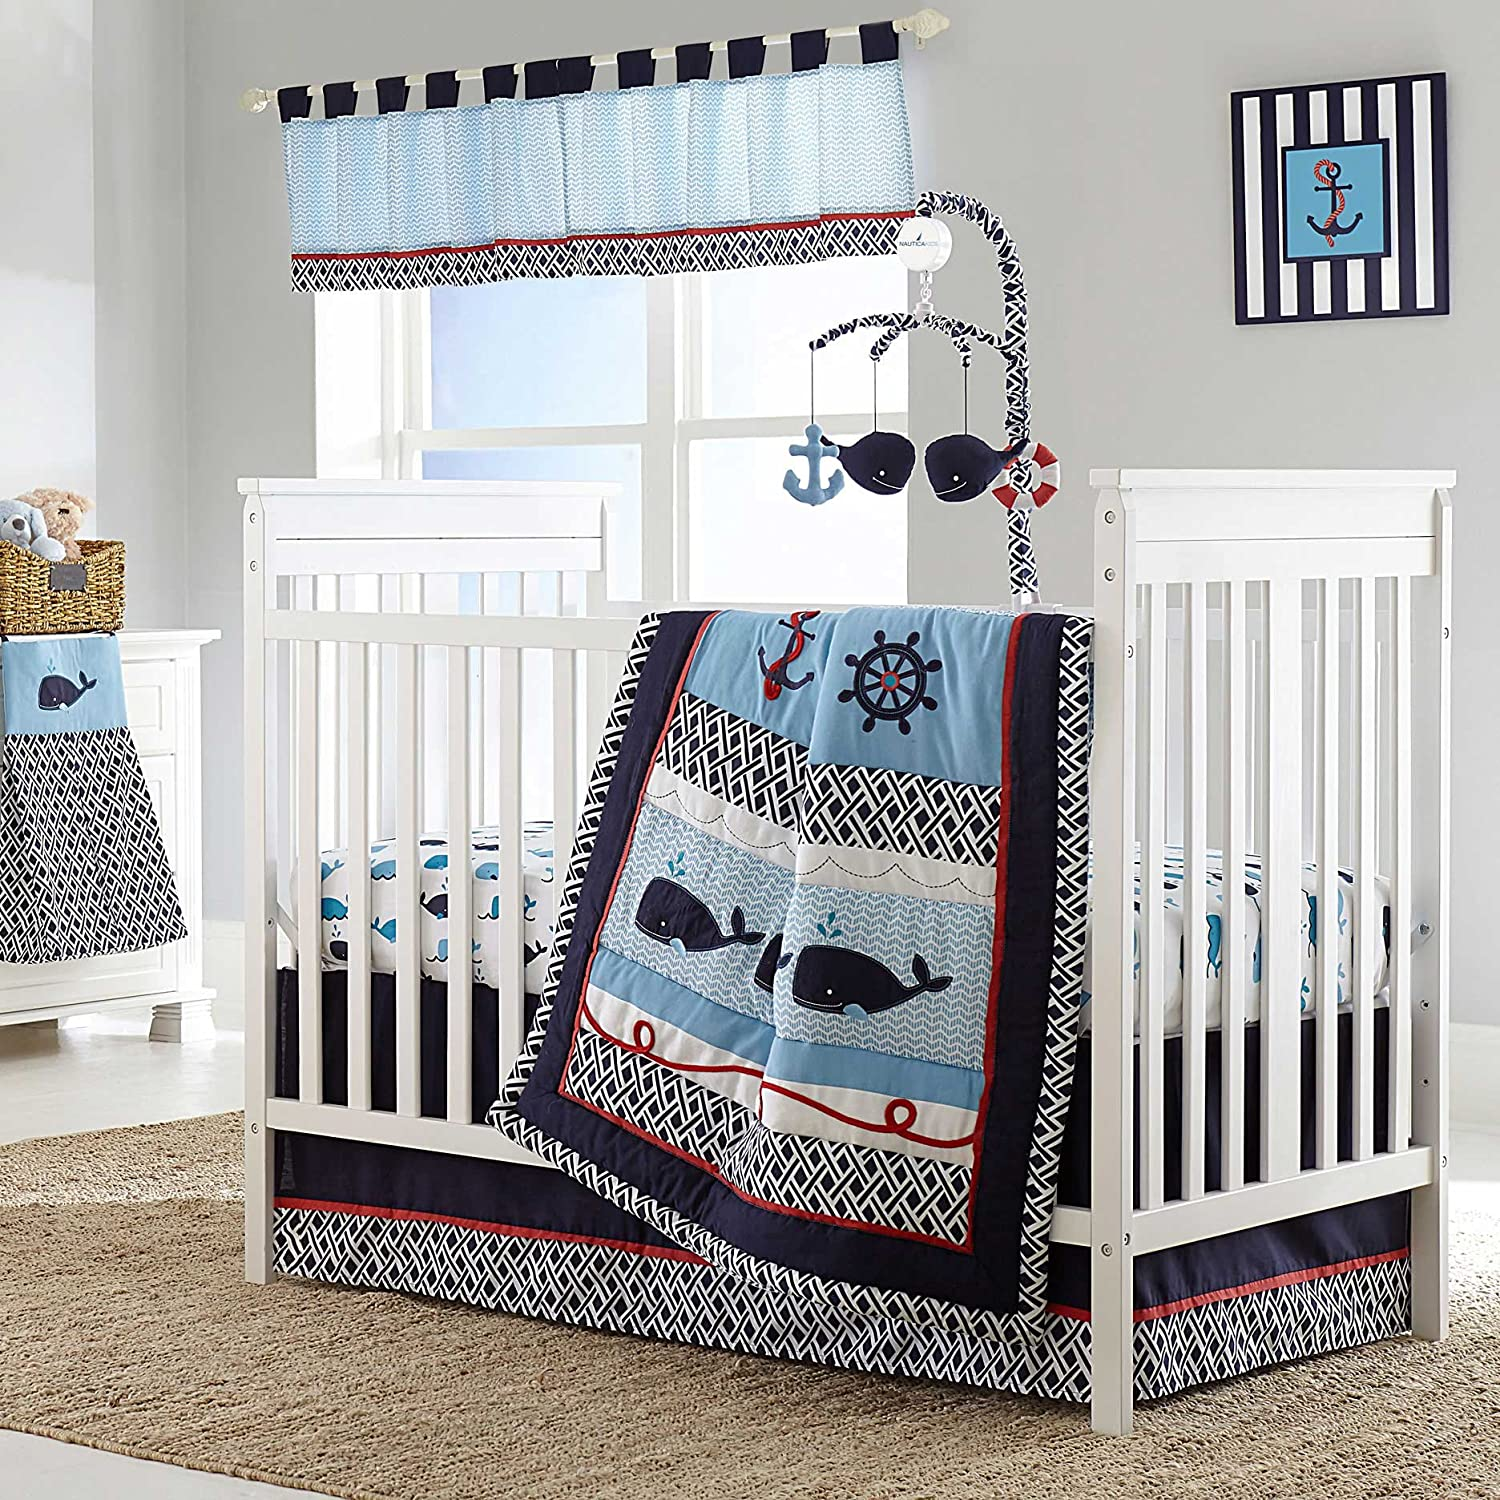 worth comfortable wood night lamp nursery stand bed ideas table brown that boy bedding are crib with buying sets baby round combine